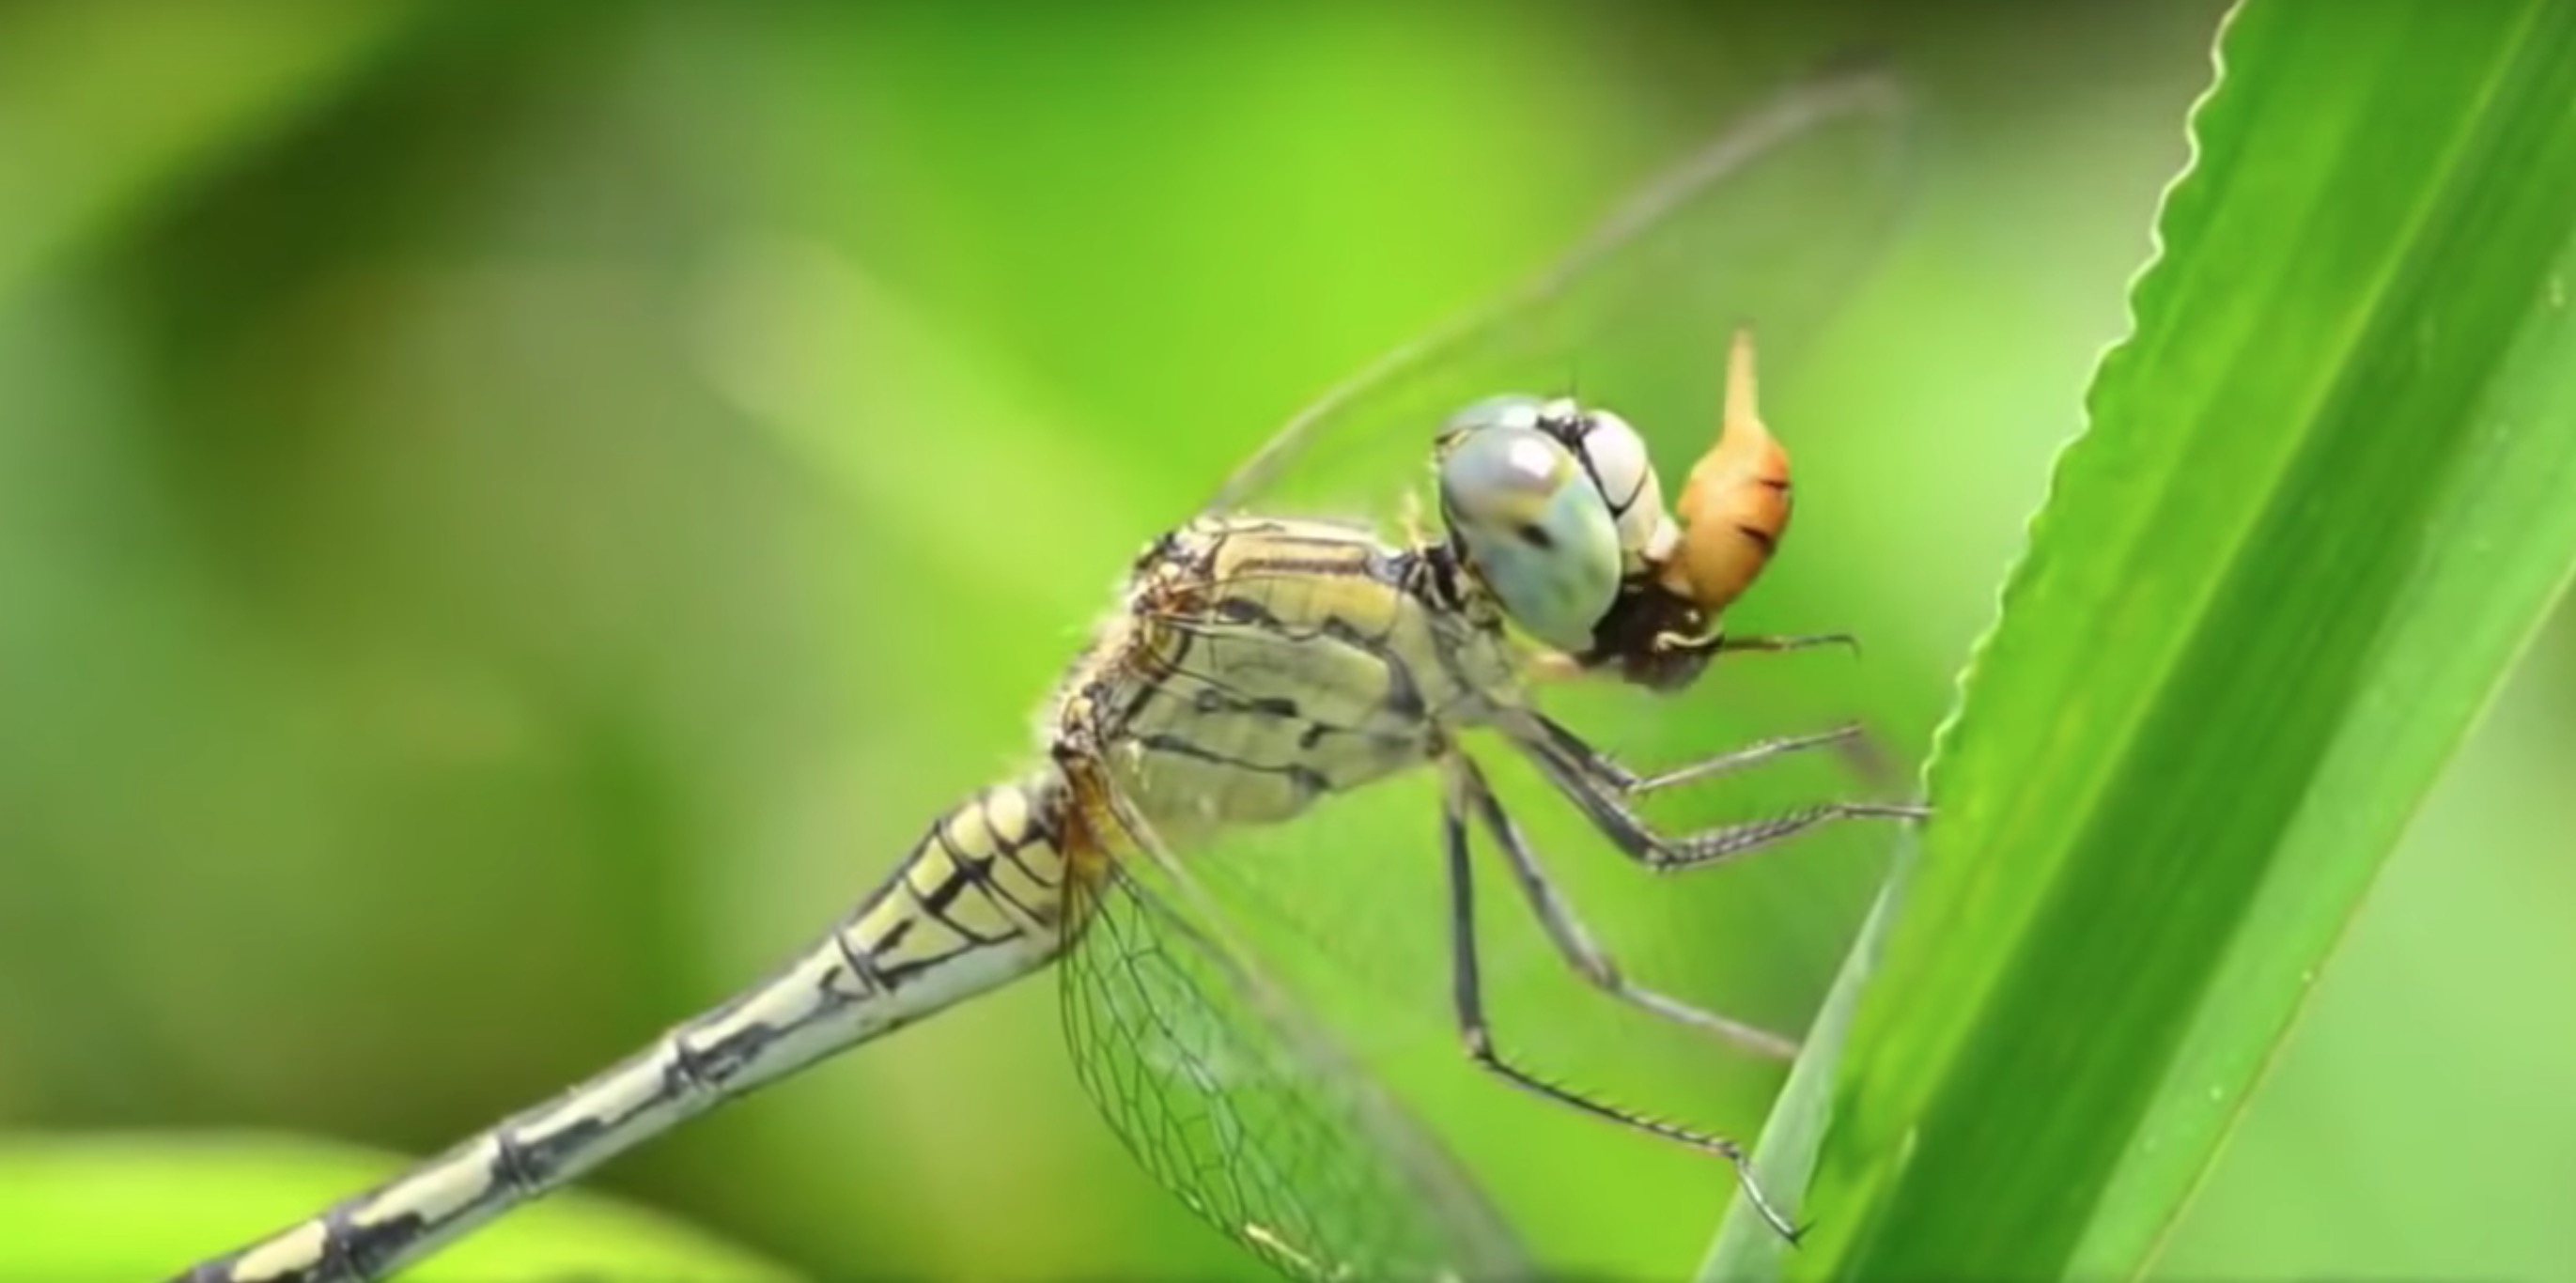 A powerful documentary about 5G, birds, bees and humanity